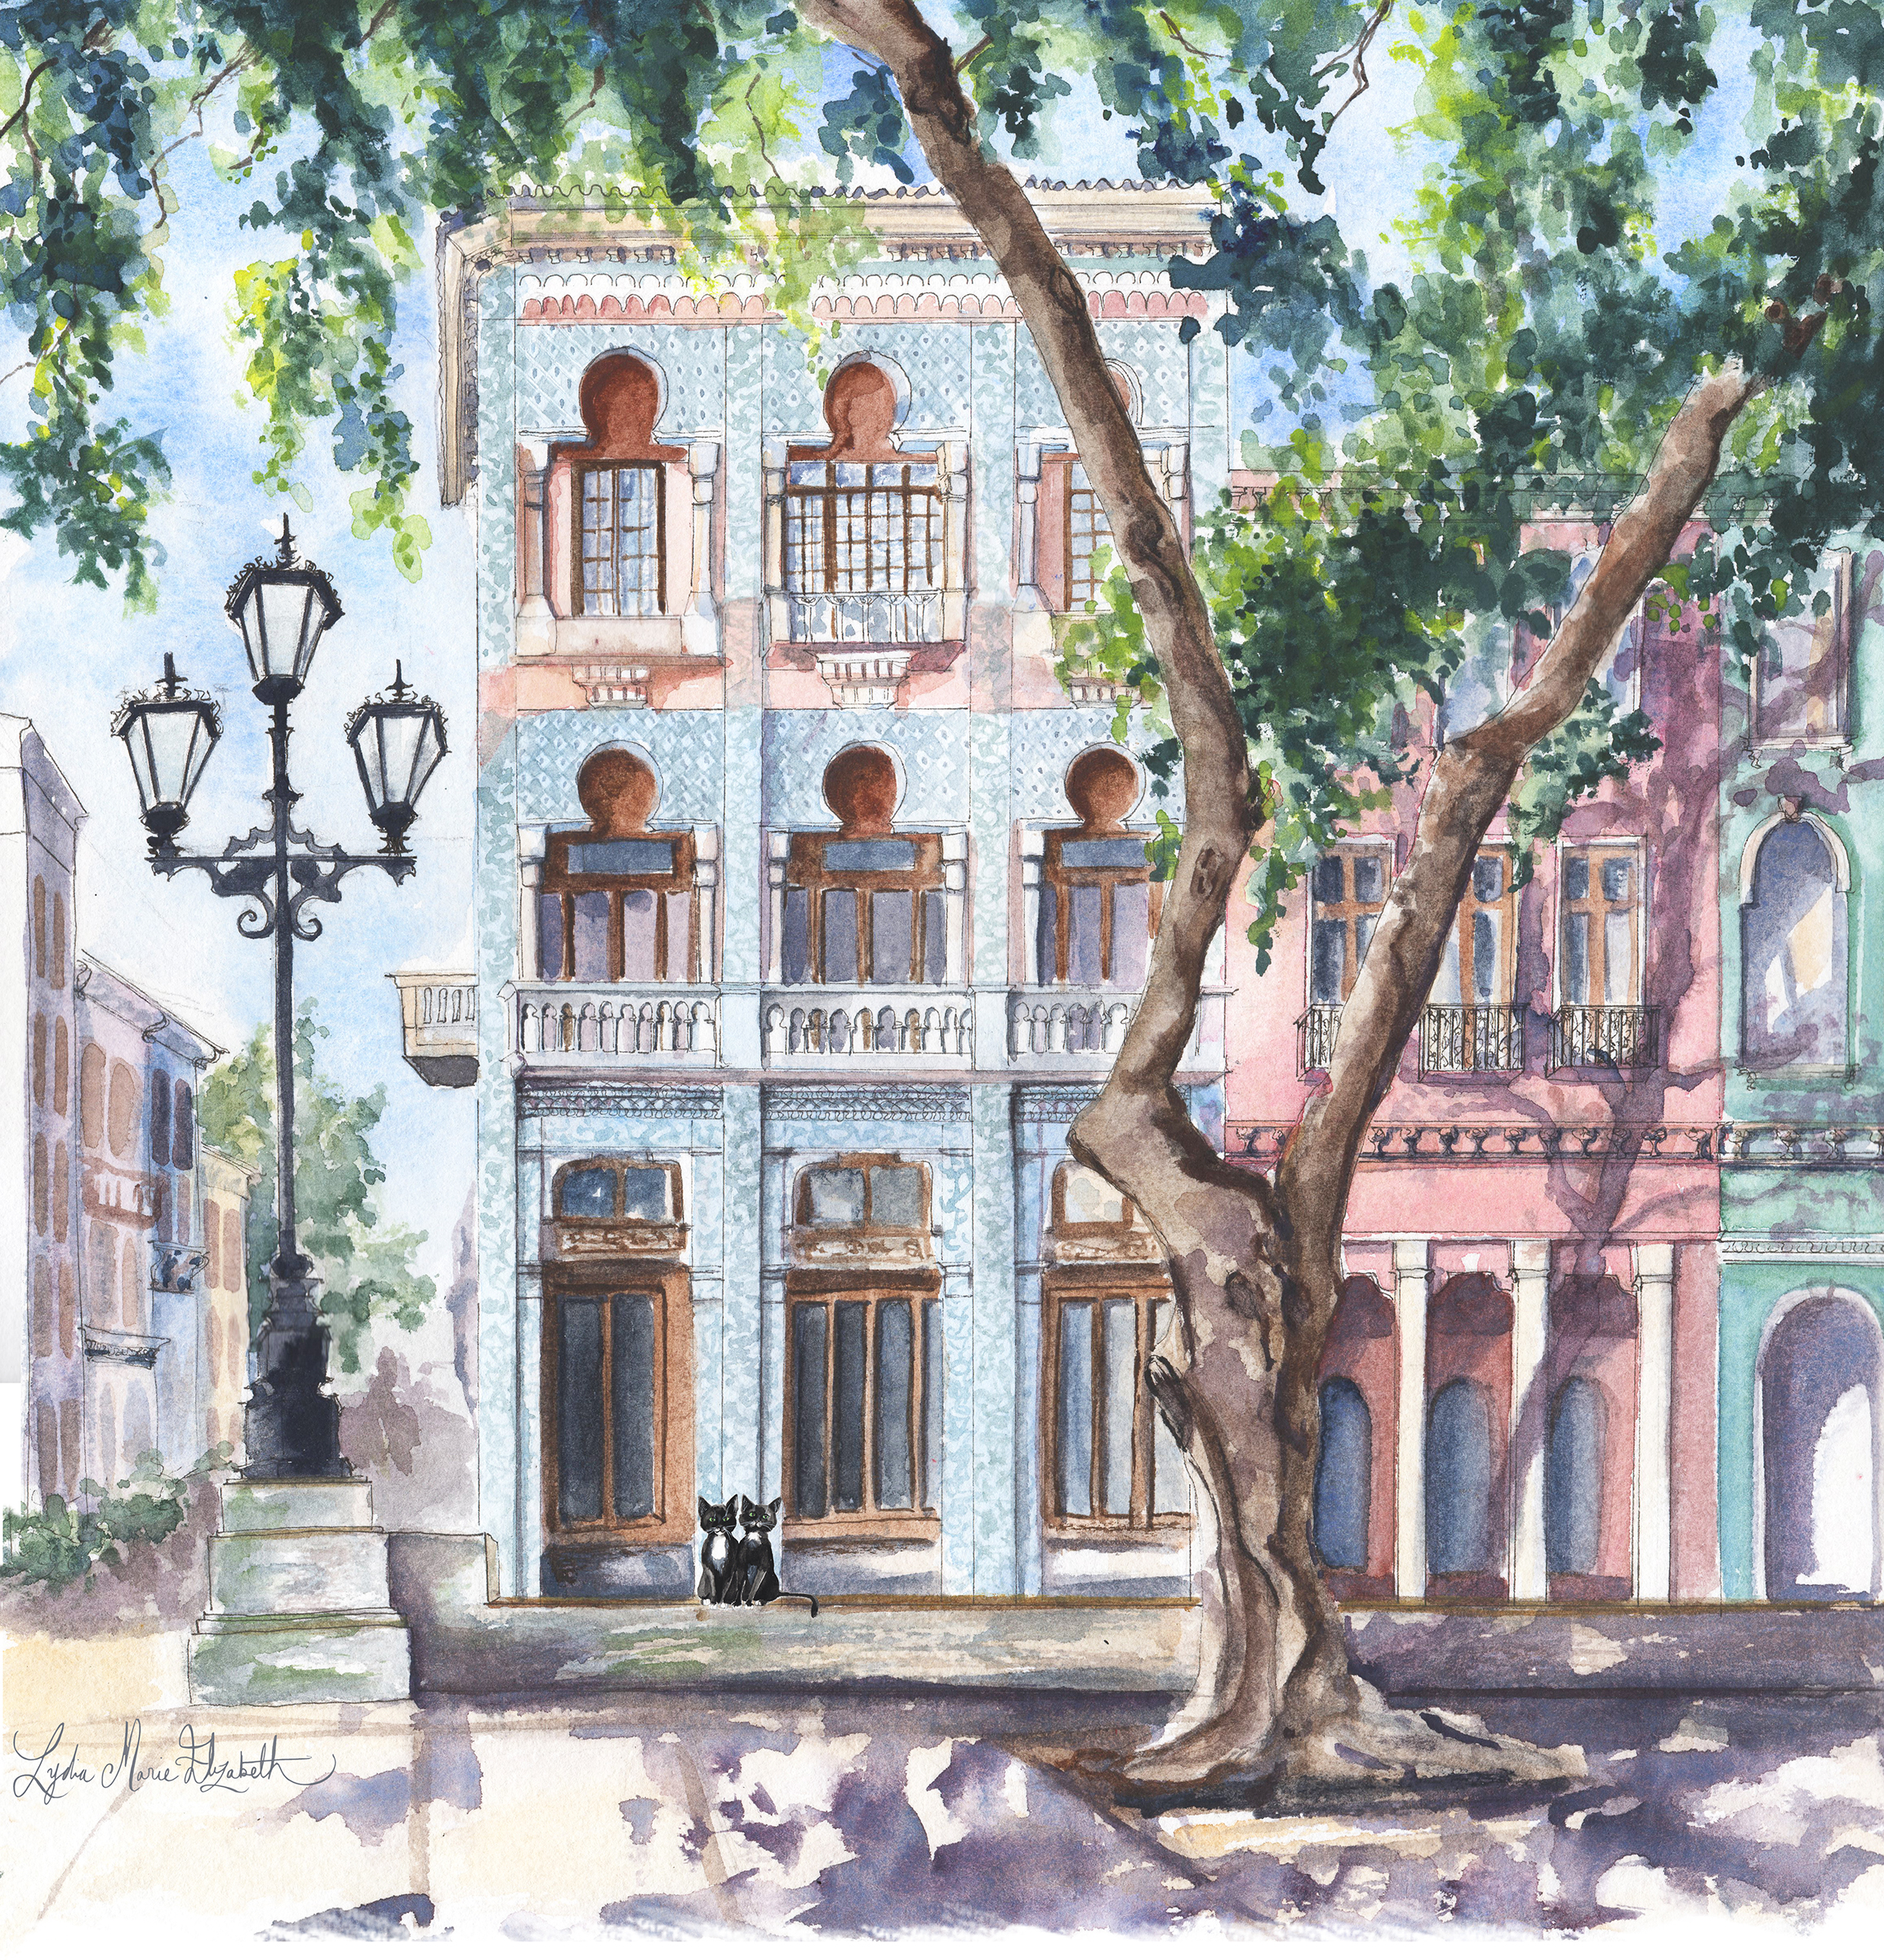 Lydia Marie Elizabeth architectural watercolor of Cuba with Lulu's cousins for the Around the world calendar 2018